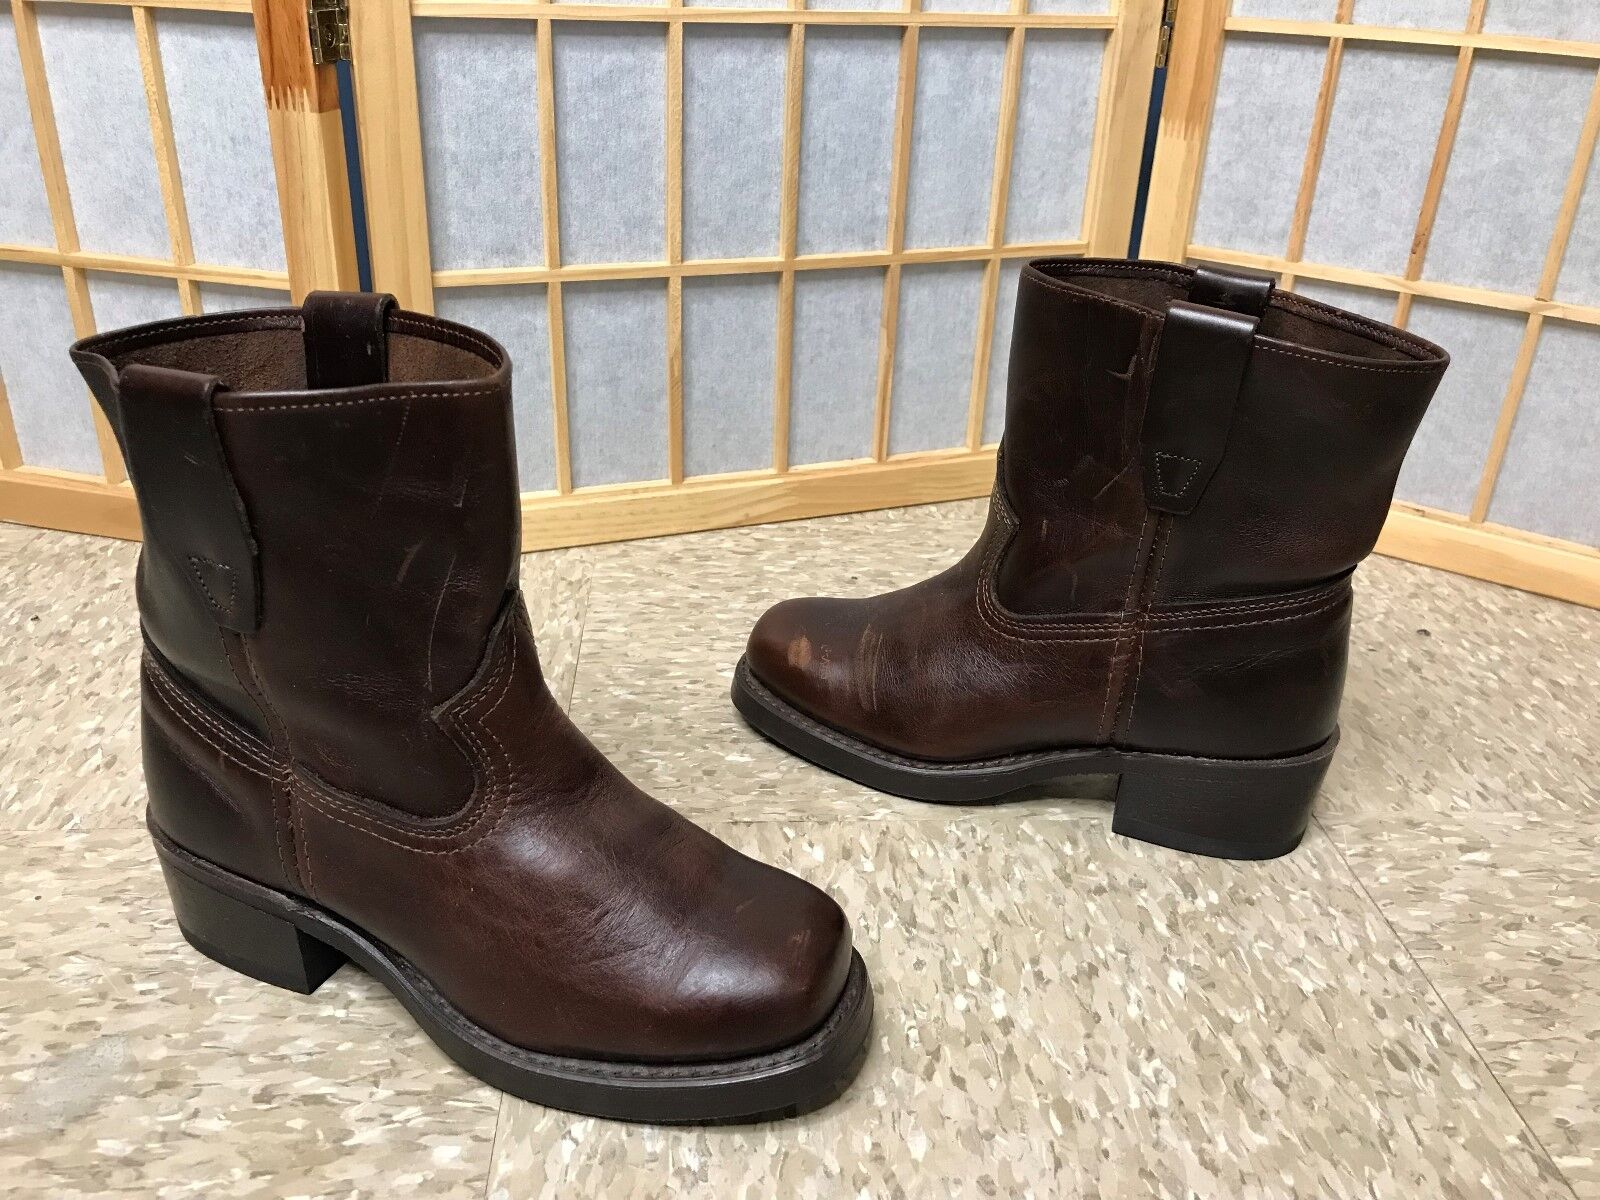 DURANGO BROWN GOODYEAR WELT MADE IN USA ANKLE BOOTS WOMENS LEATHER PULL-ON SZ 5